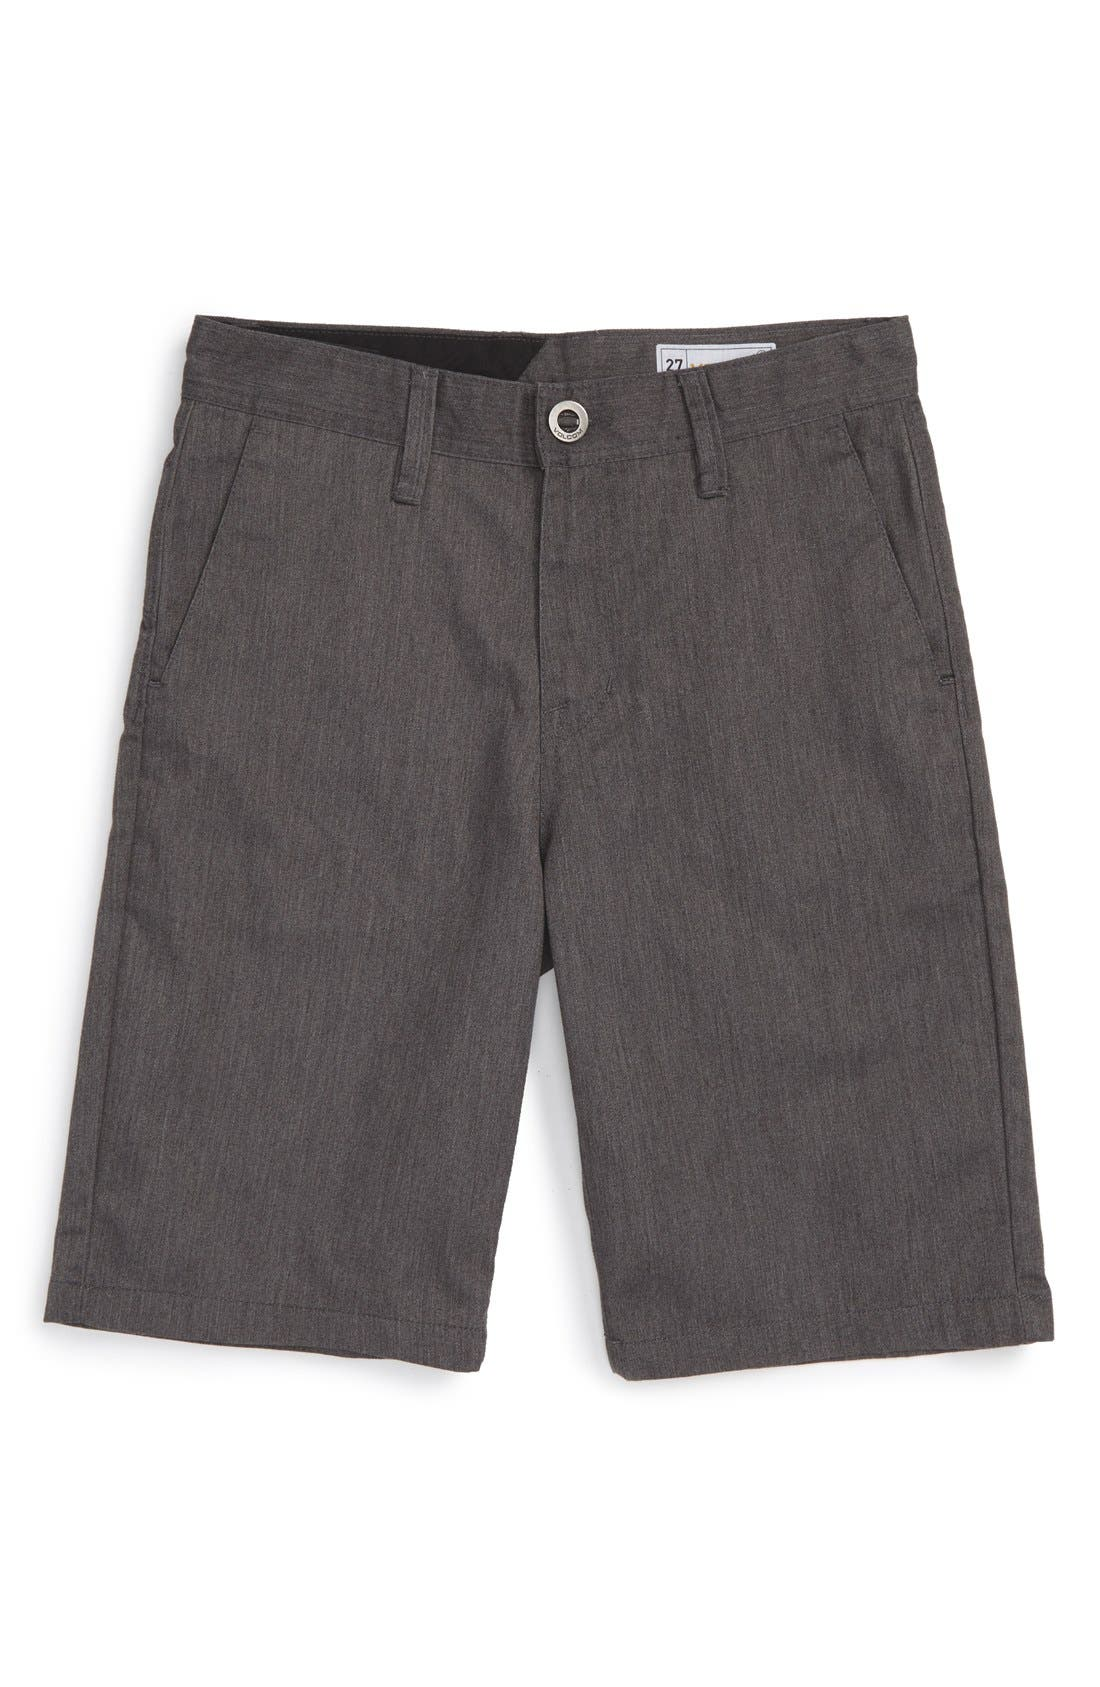 Alternate Image 1 Selected - Volcom Chino Shorts (Toddler Boys, Little Boys & Big Boys)